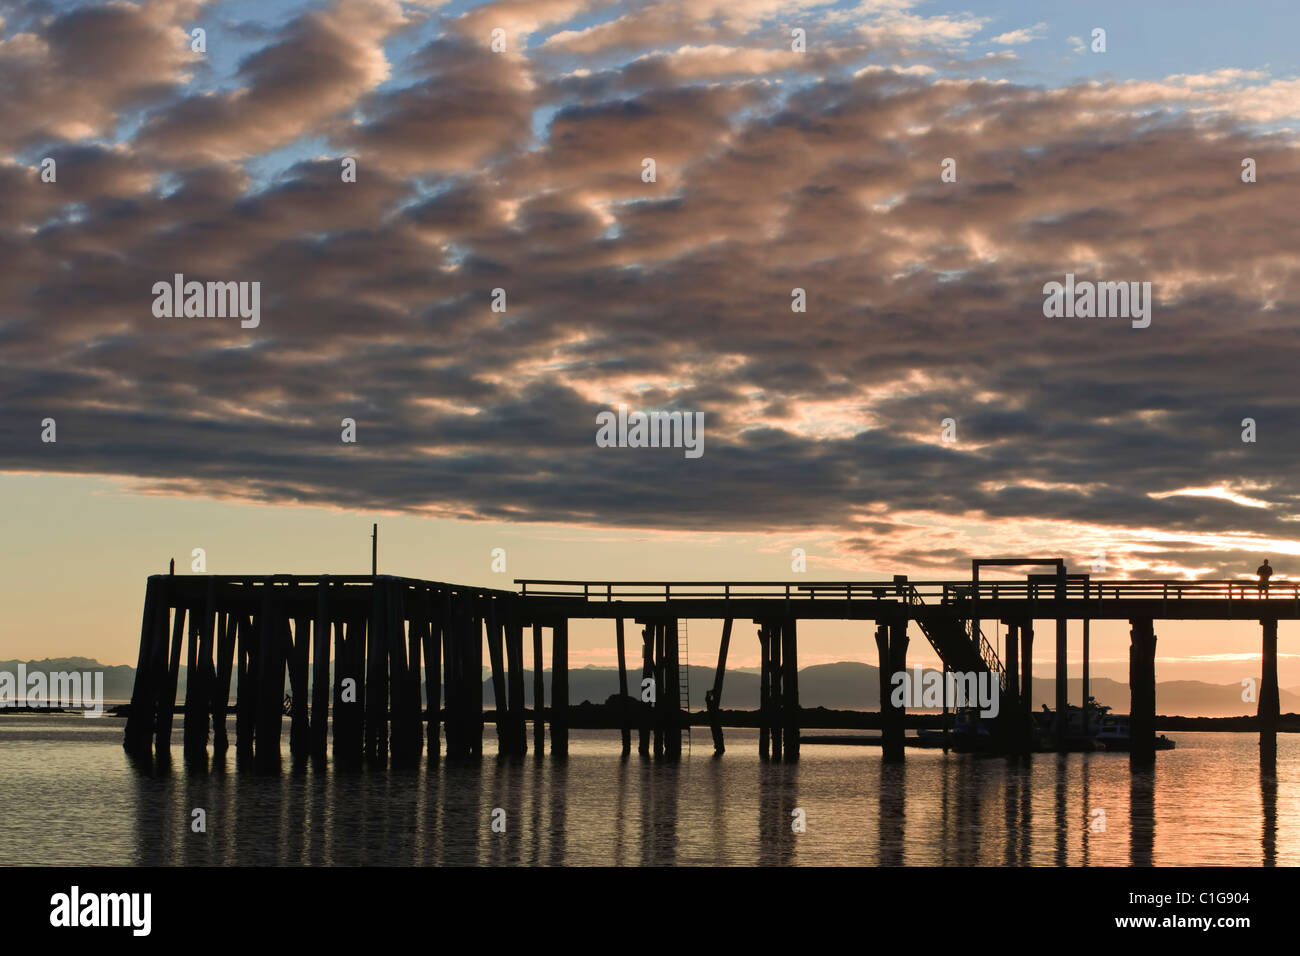 The dock at Kake, Kupreanof Island, in the Inside Passage of Southeast Alaska, in silhouette at sunset in the summer. - Stock Image